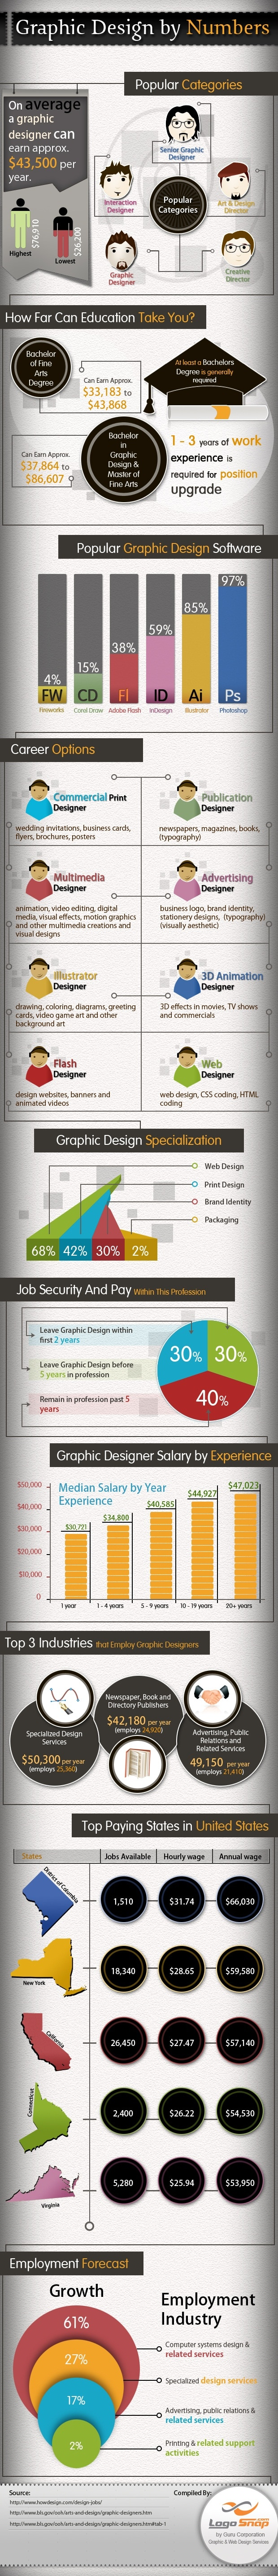 In-Depth Look At The Graphic Design Career [Infographic]